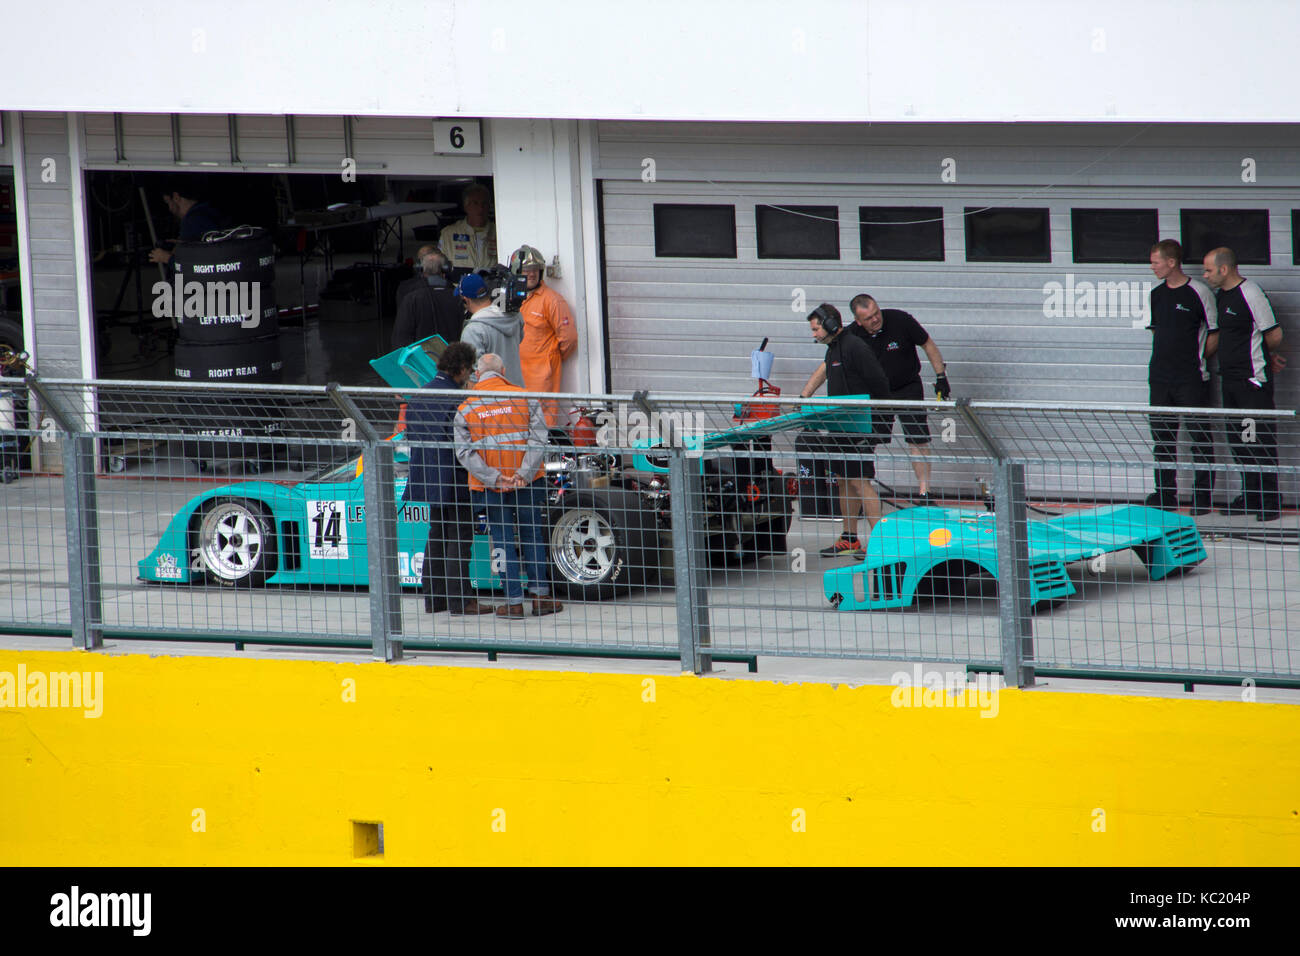 Budapest, Hungary -September 30, 2017: Oldtimer event and races at the Hungaroring circuit on September 30, 2017 - Stock Image